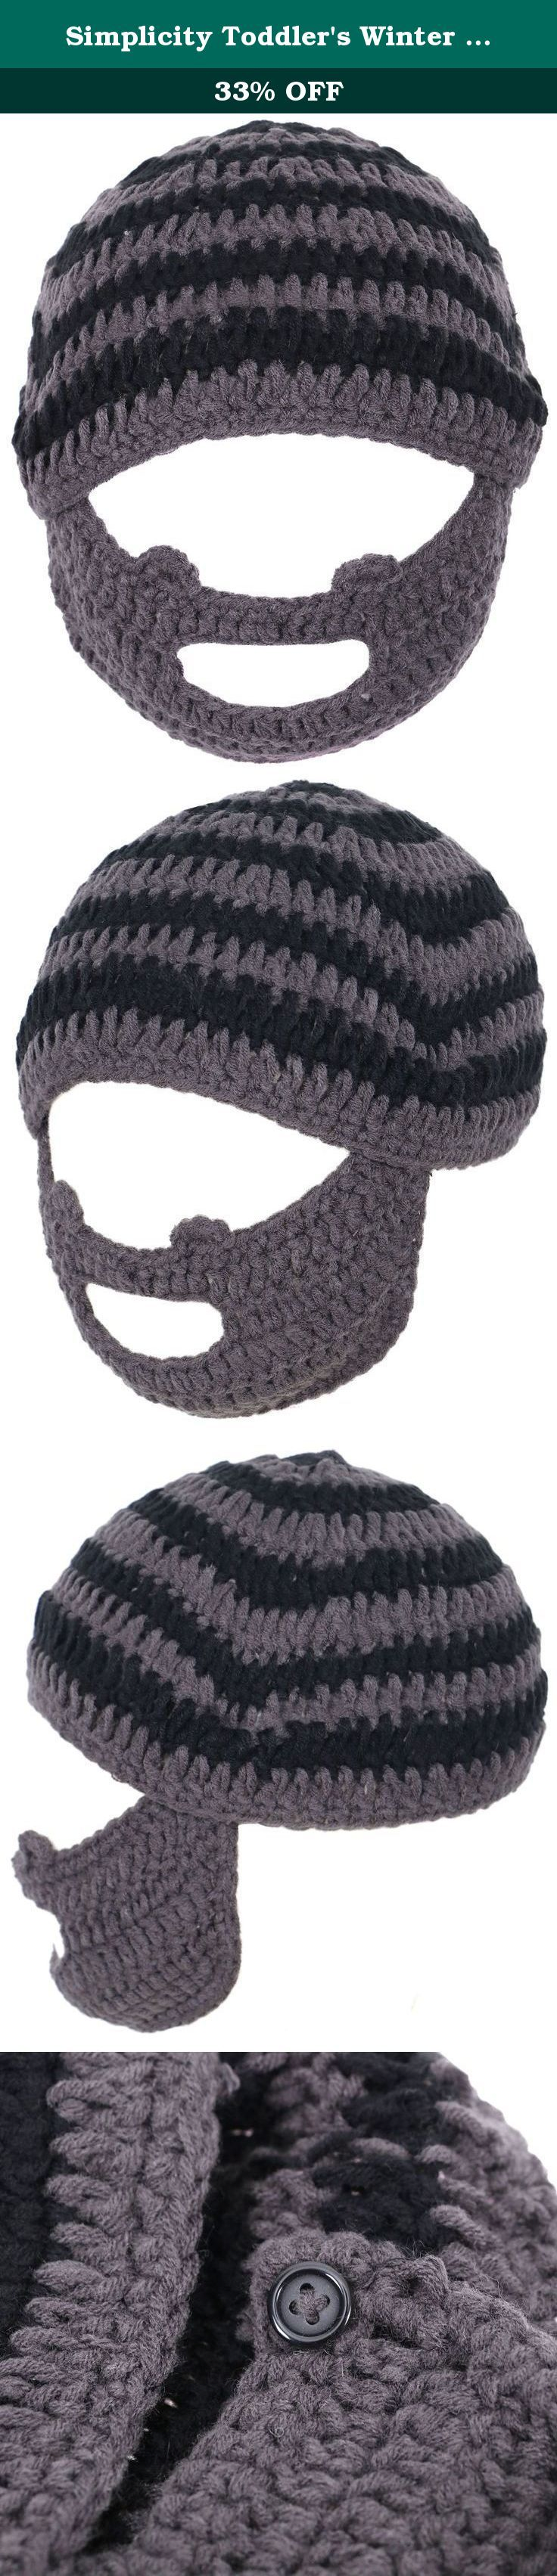 """Simplicity Toddler's Winter Crochet Bearded Beanie Hats Caps, Gray/Black Stripe. Toddler's classic winter beanie with a fun detachable mustache & beard face warmer. Designed in hand knitted acrylic for maximum It is warmth and flexibility to keep your little one cozy in this winter season. Material: 100% Acrylic Size: Inner Diameter 7.5"""" Color: As shown in pictures Package Includes: 1 x Beanie Hat w/ Beard ."""